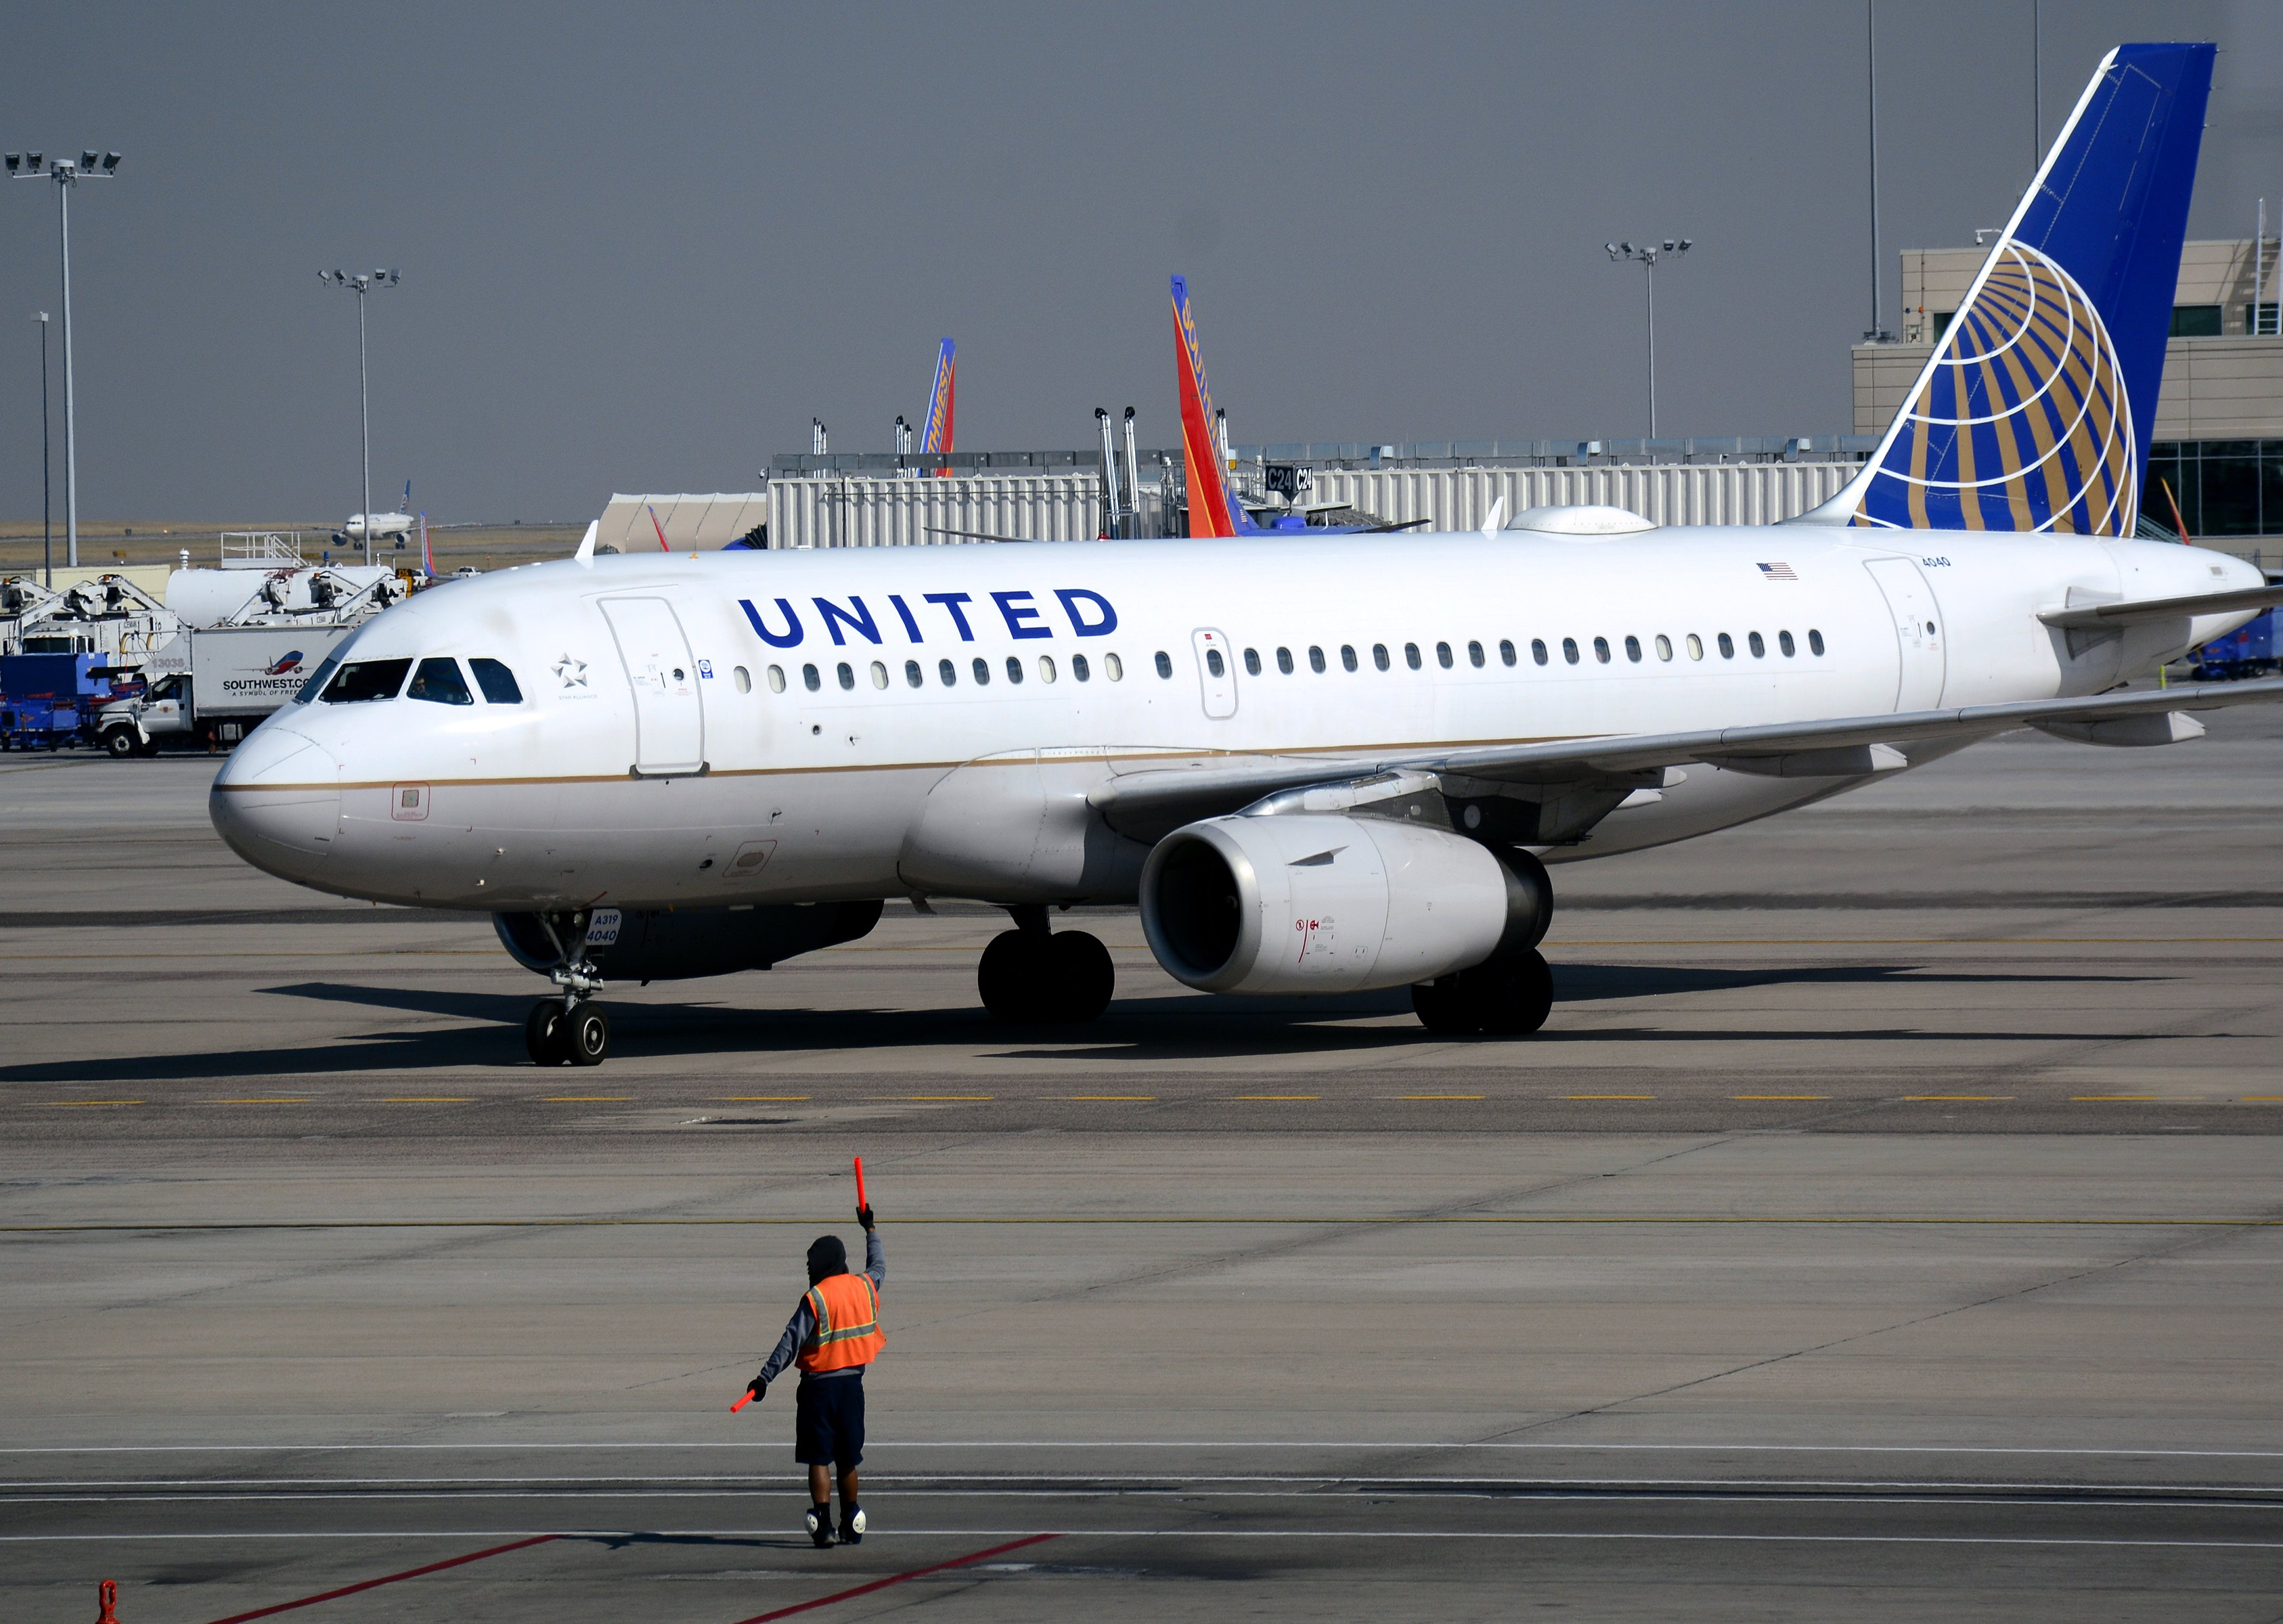 United airline photo